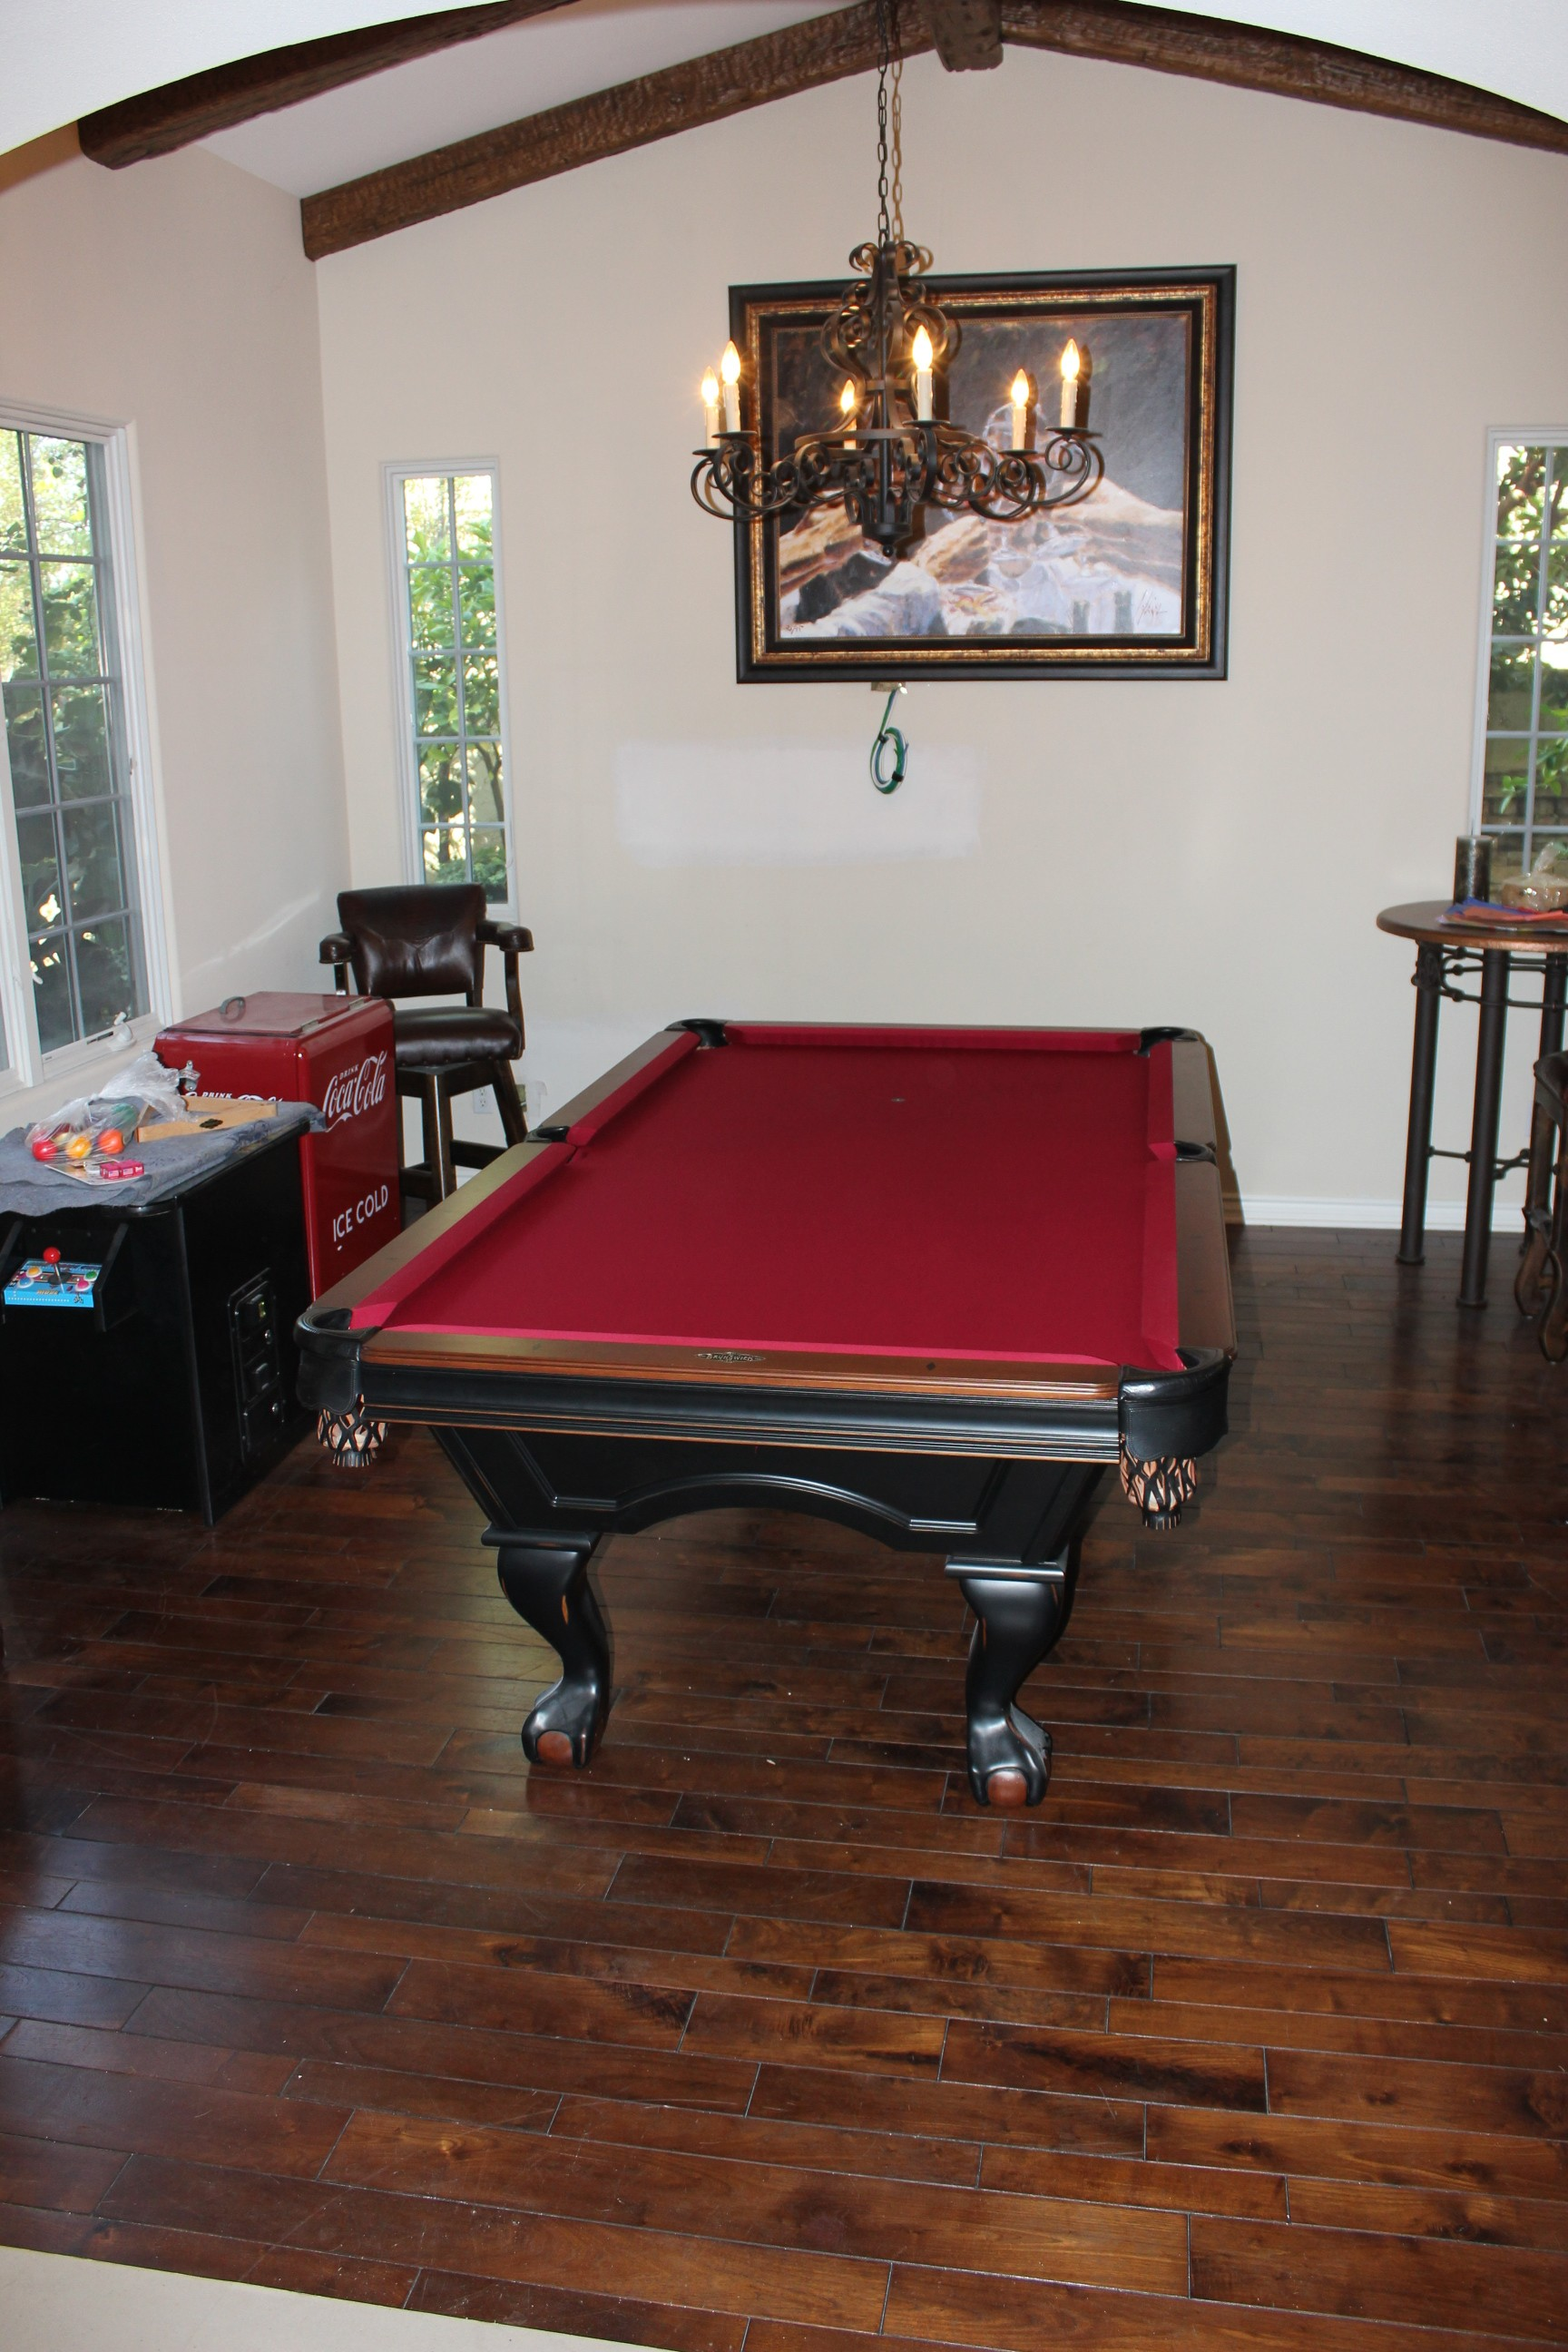 What Size Pool Table?